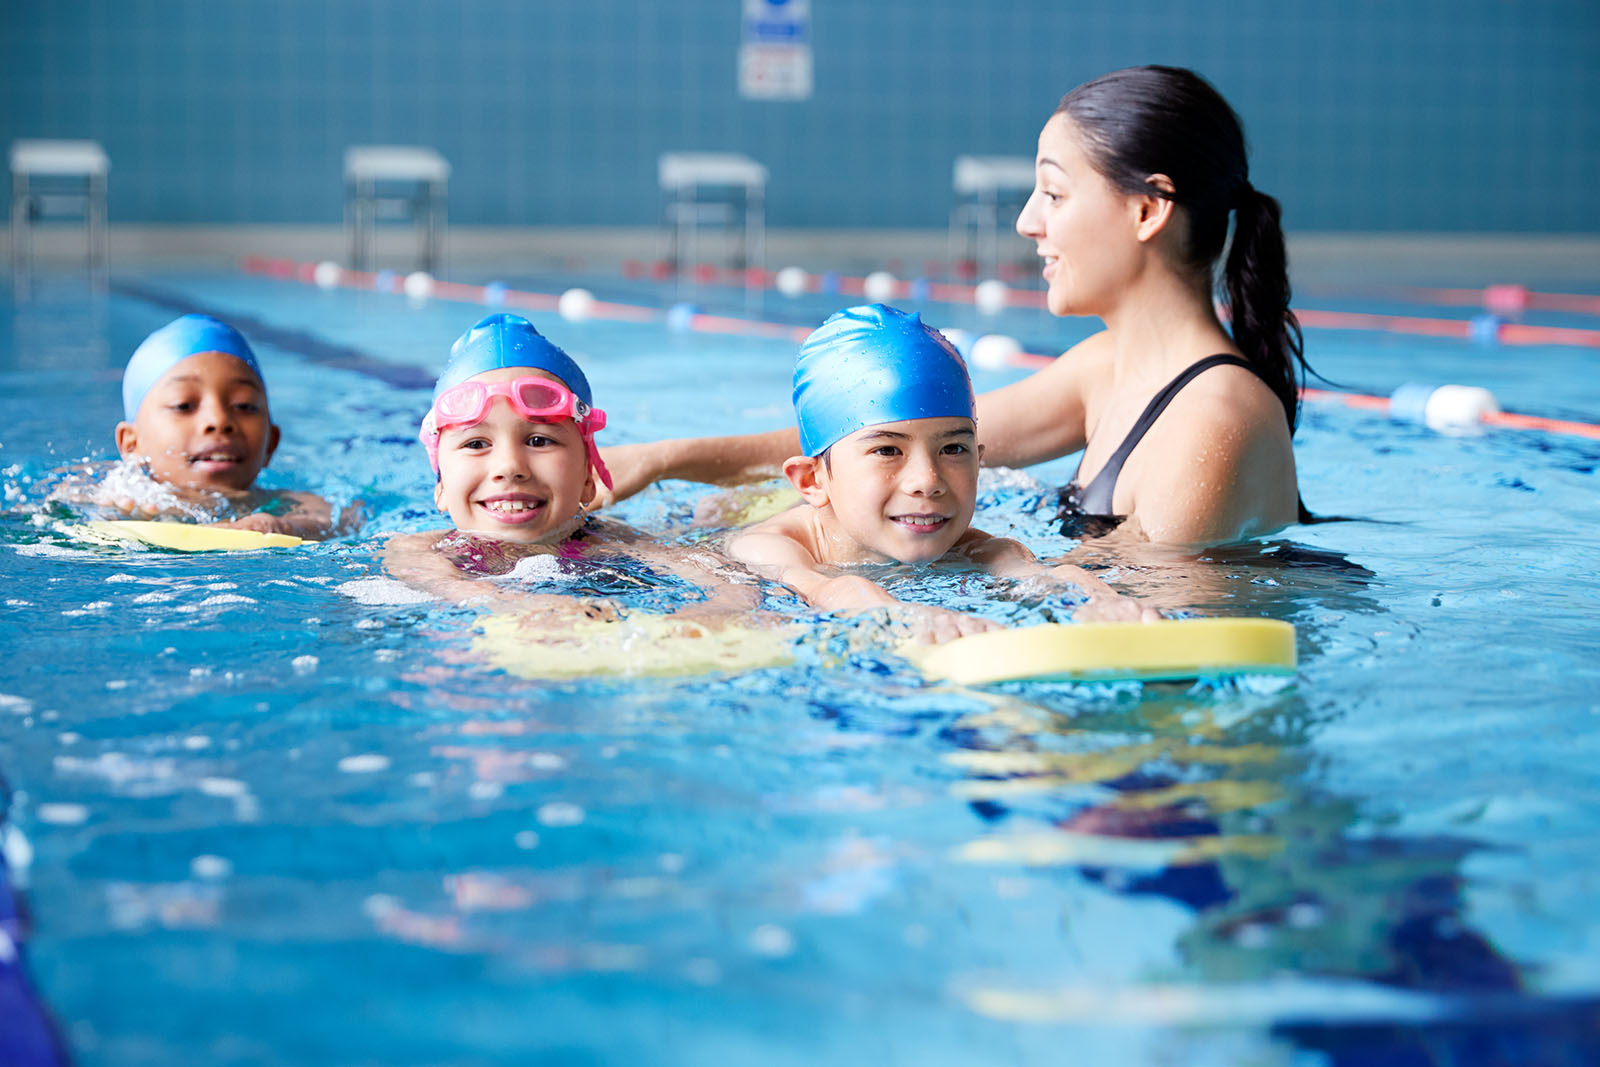 swimming instructor teaching young children how to swim with floats